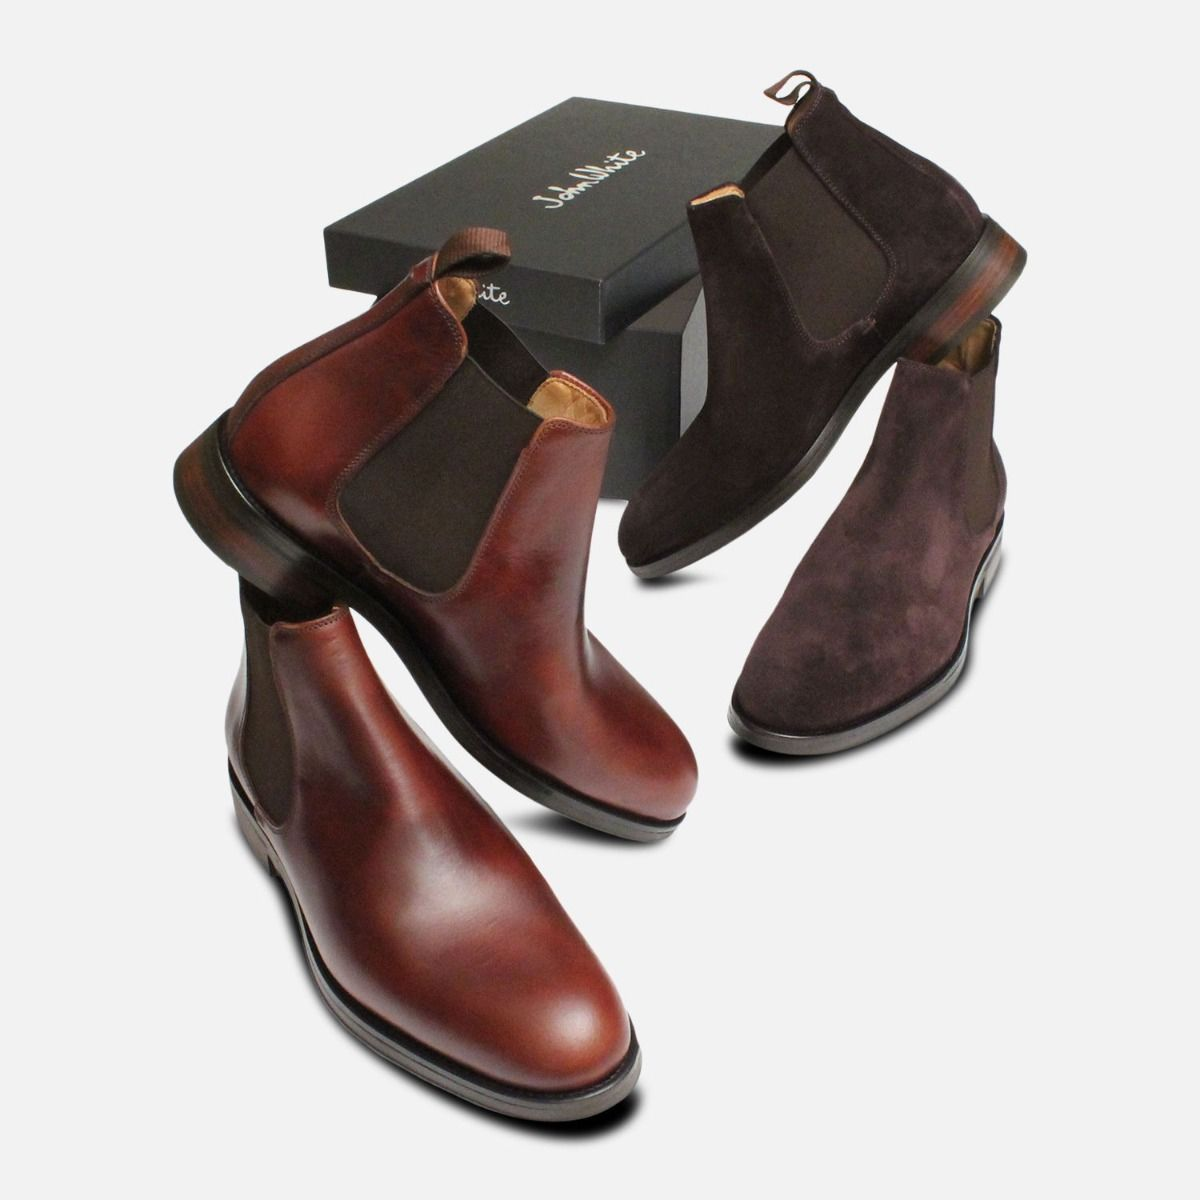 Mens Footwear in Tunbridge Wells at Gray & Co. - Chelsea Boots by John White